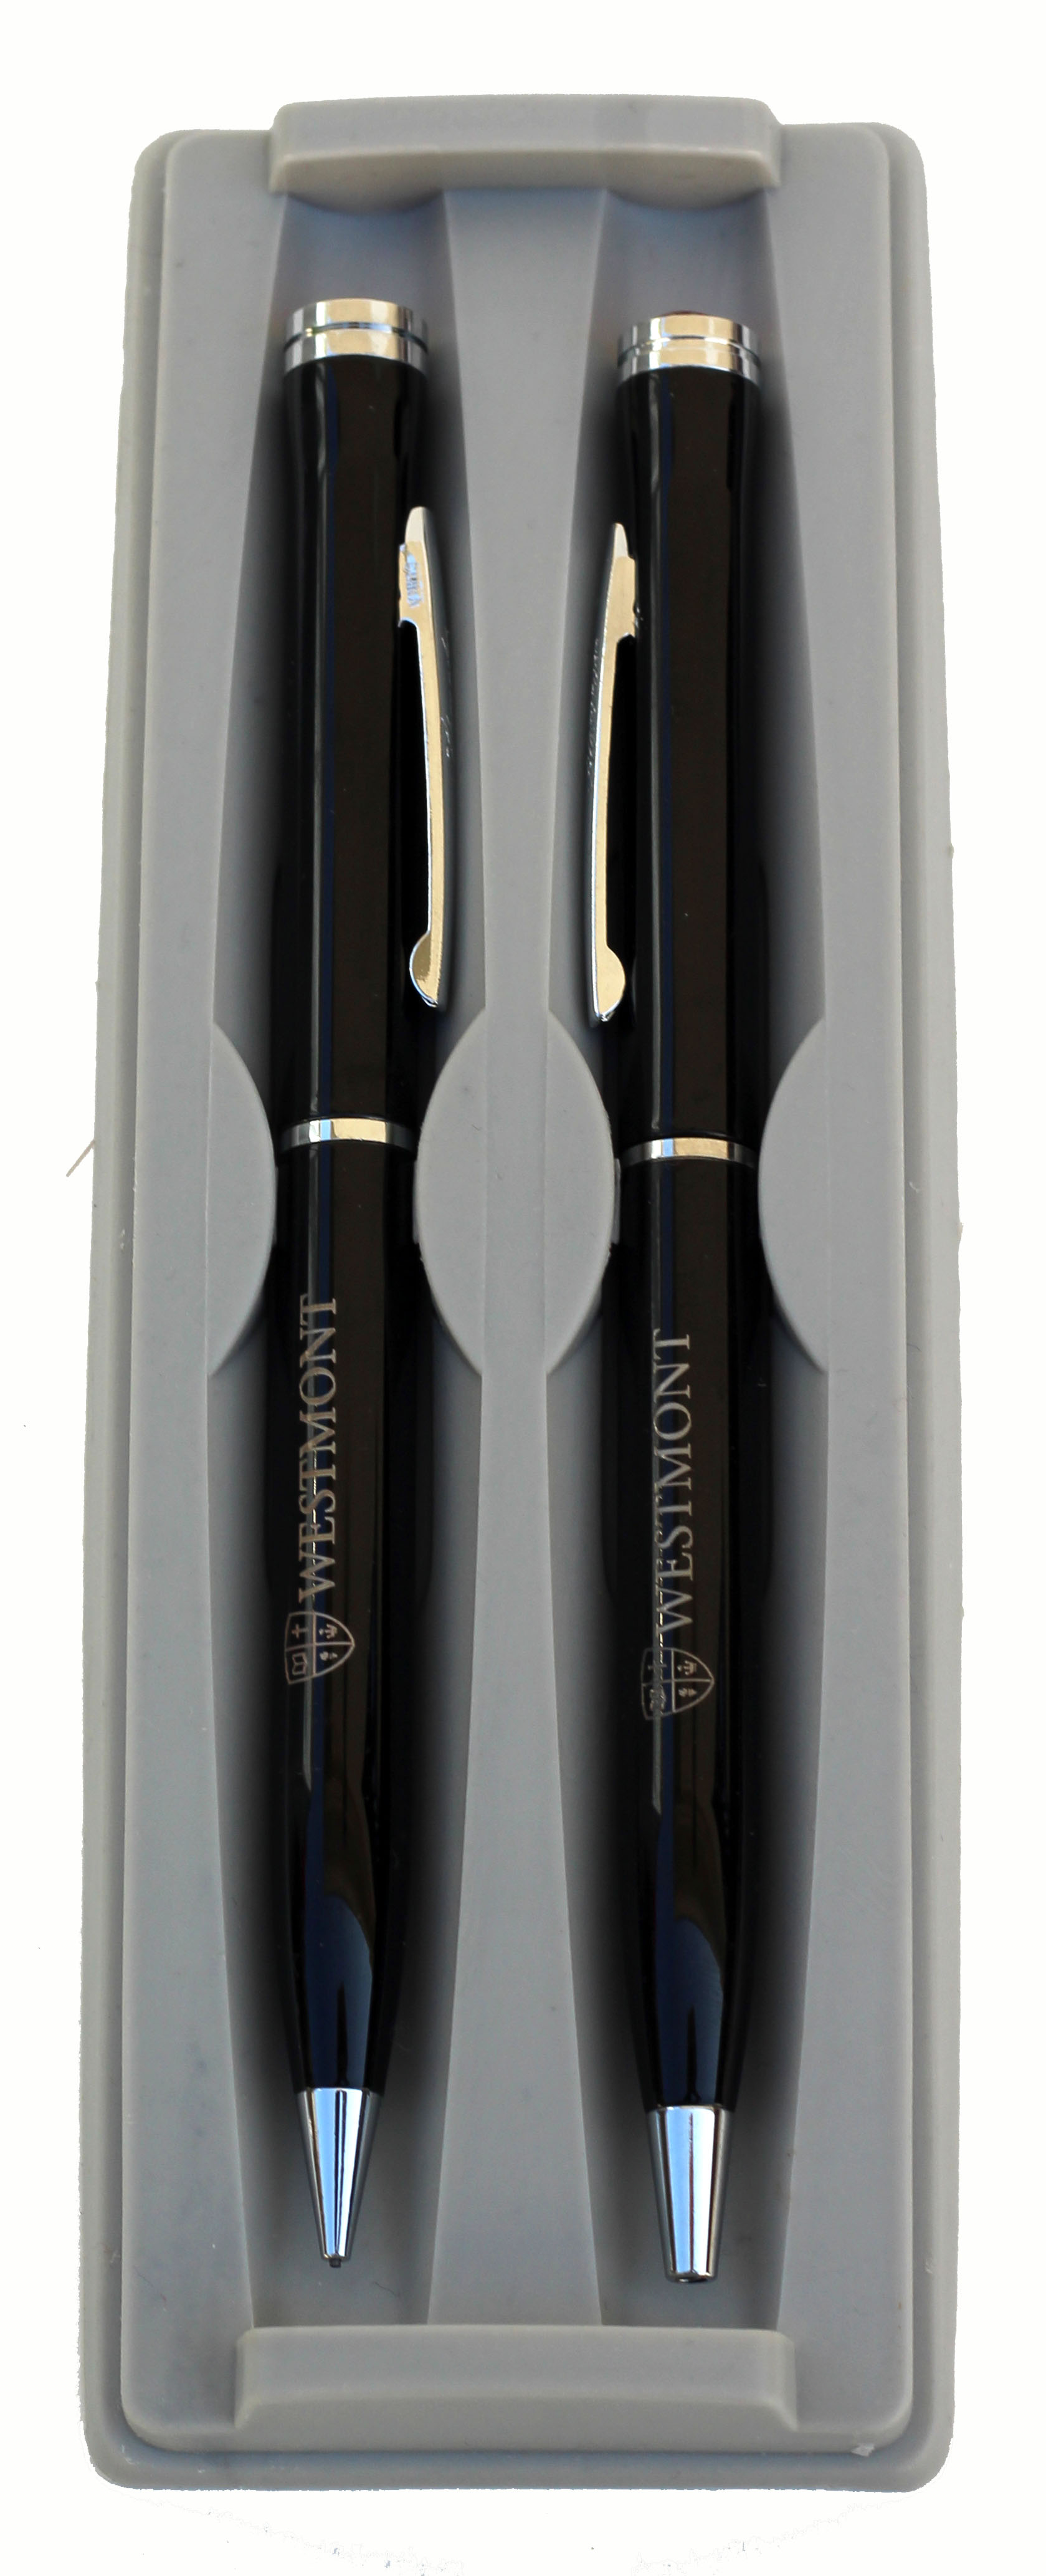 Image for the Spirit Black/Silver Westmont Seal Pen product